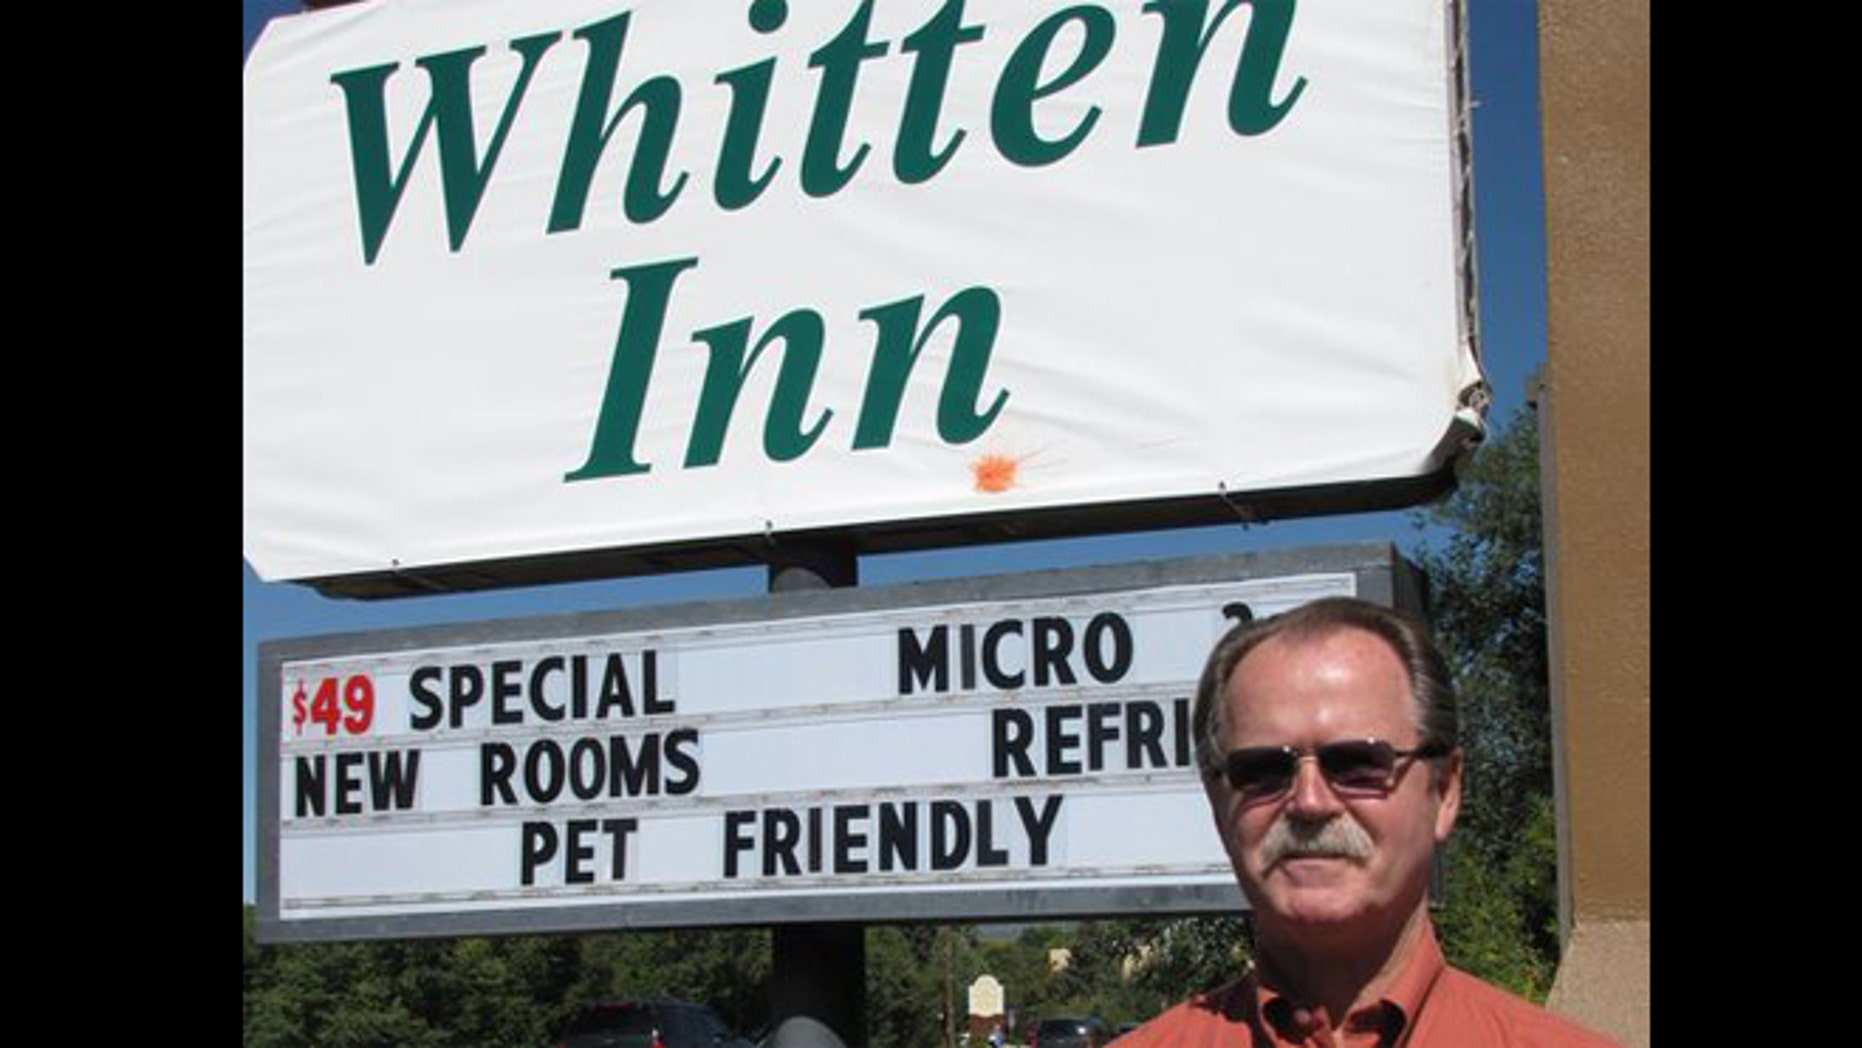 This Oct. 1, 2009 photo shows hotel owner Larry Whitten standing in front of the sign for his hotel in Taos, N.M.